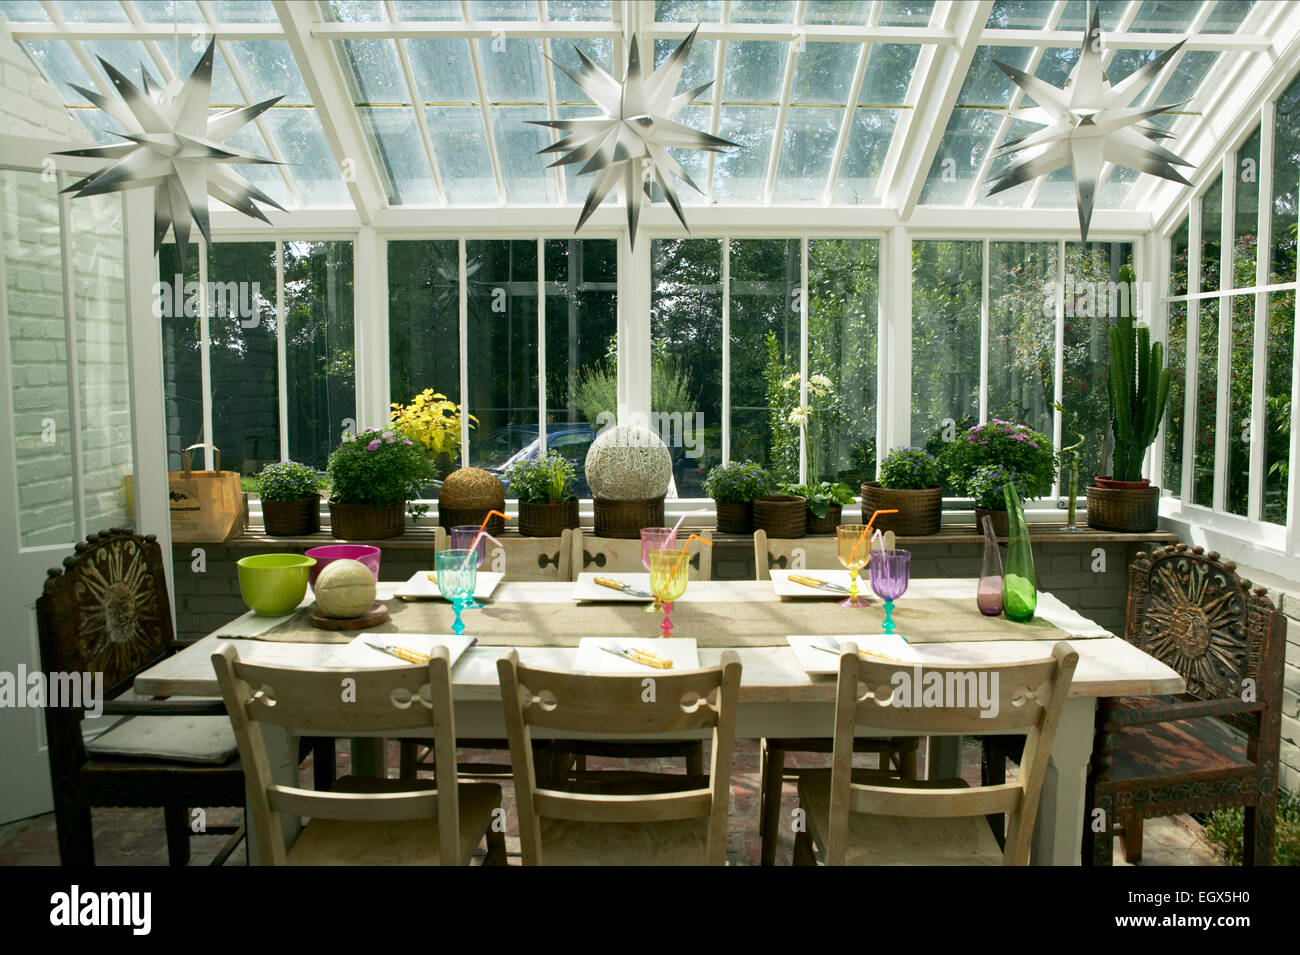 Dining table in conservatory Stock Photo, Royalty Free Image ...